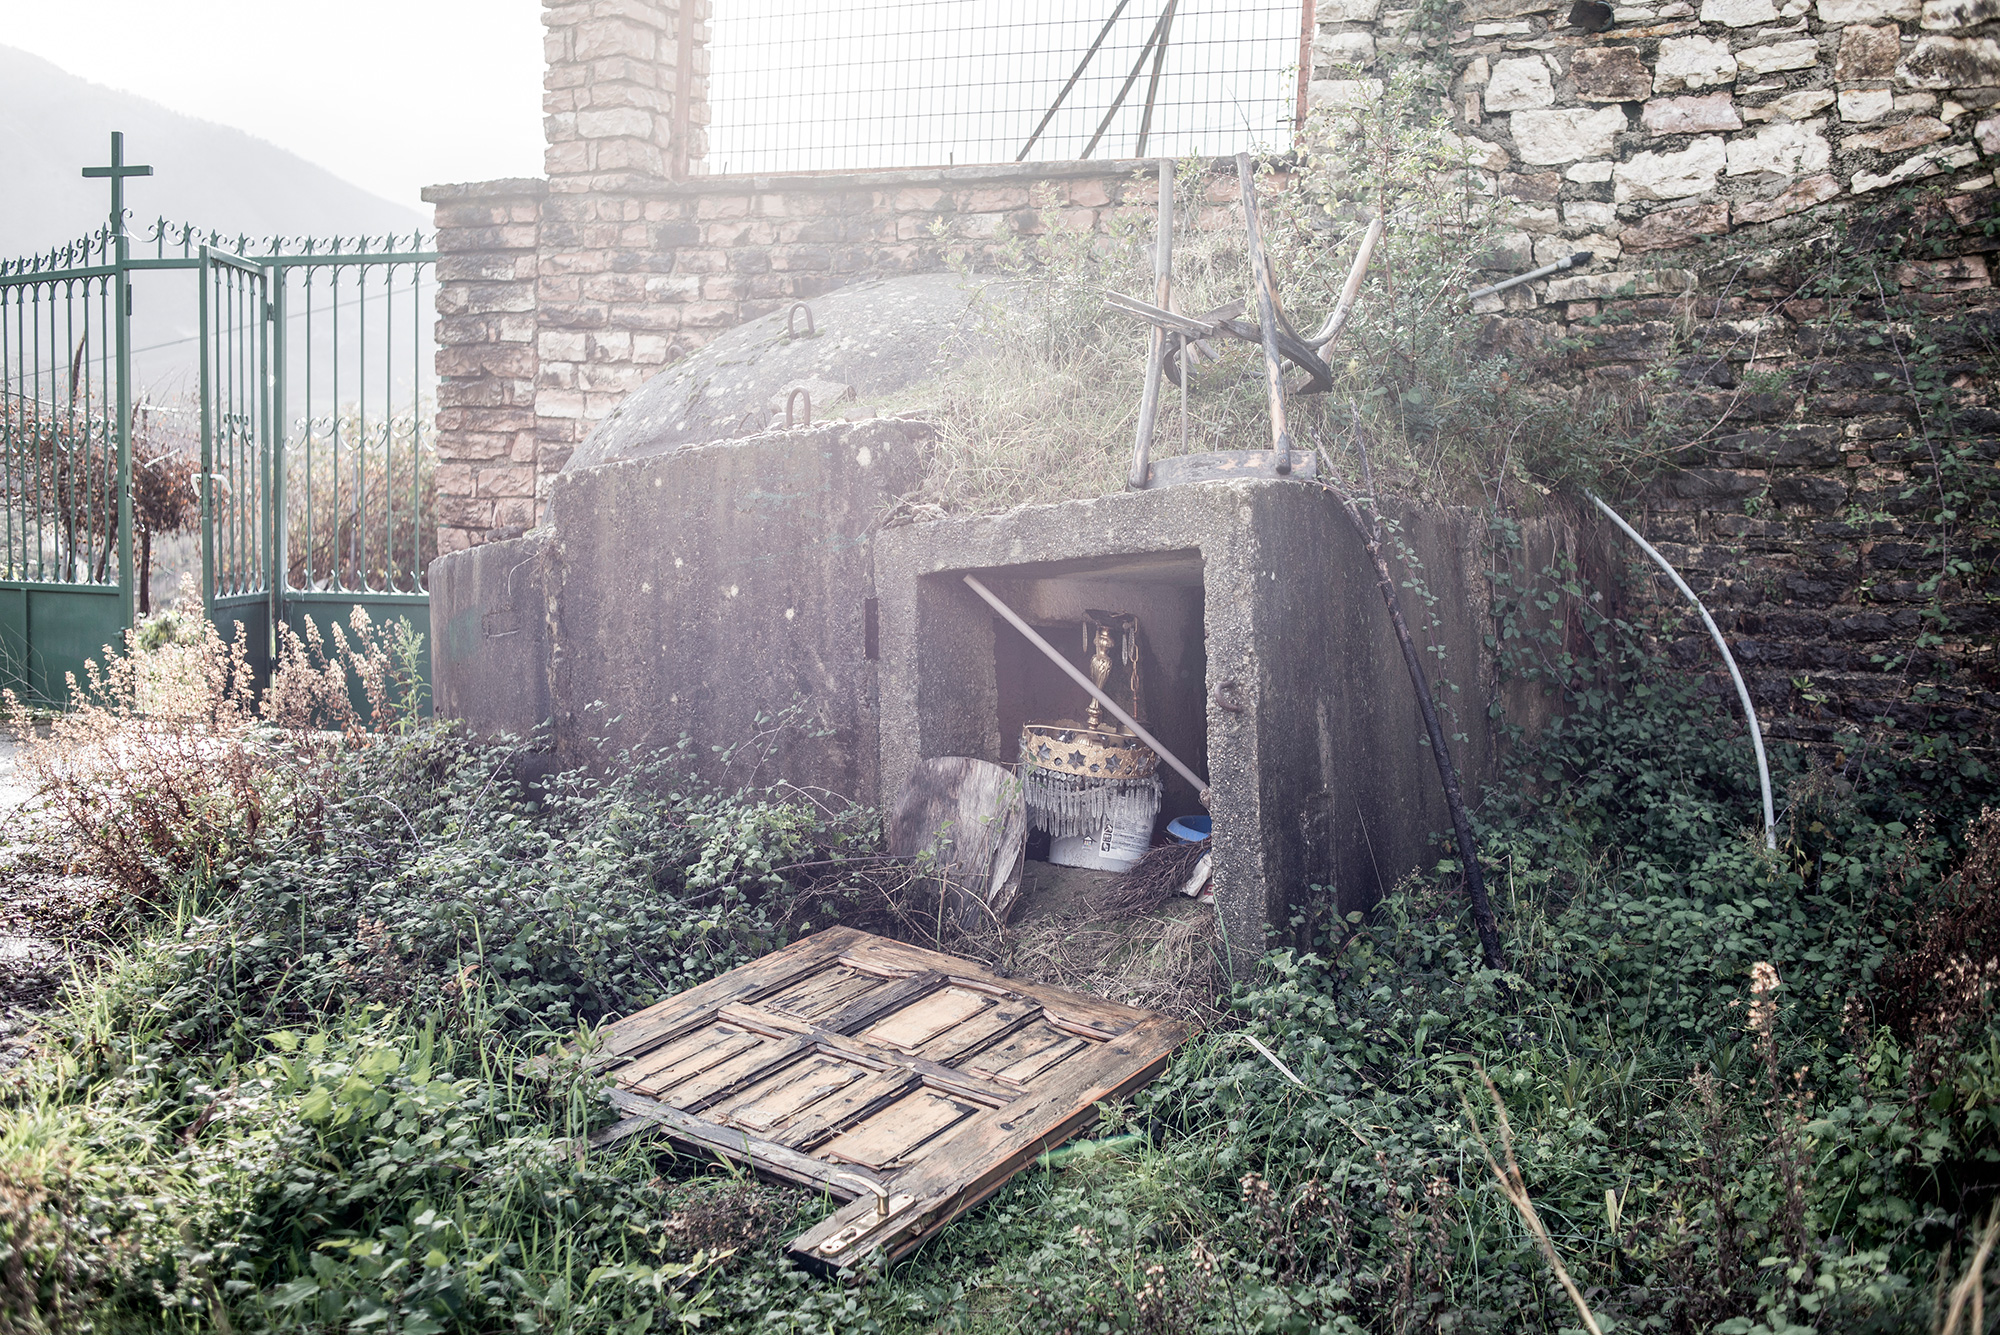 The bunker is used to store church utensils in the churchyard, Bistrica, Albania